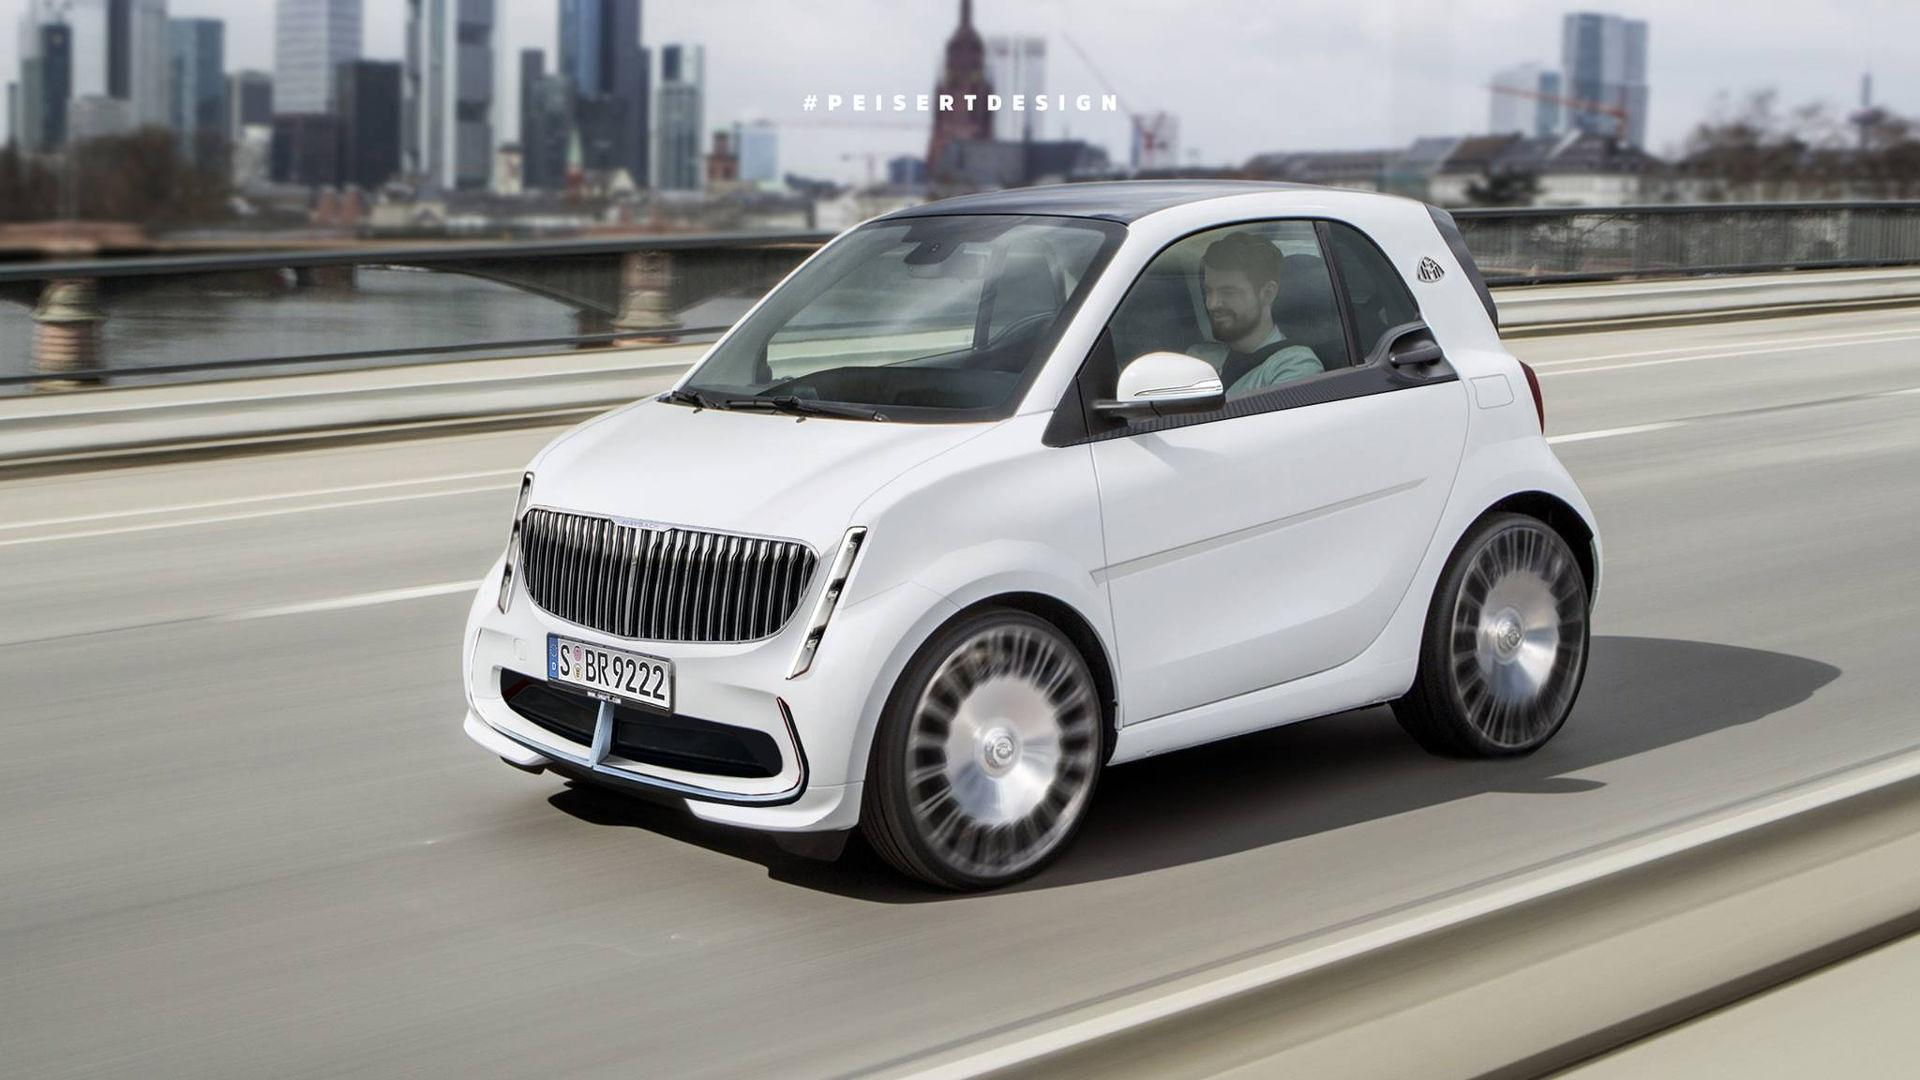 Smart Maybach By Peisert Design Is Electric, Luxurious ...